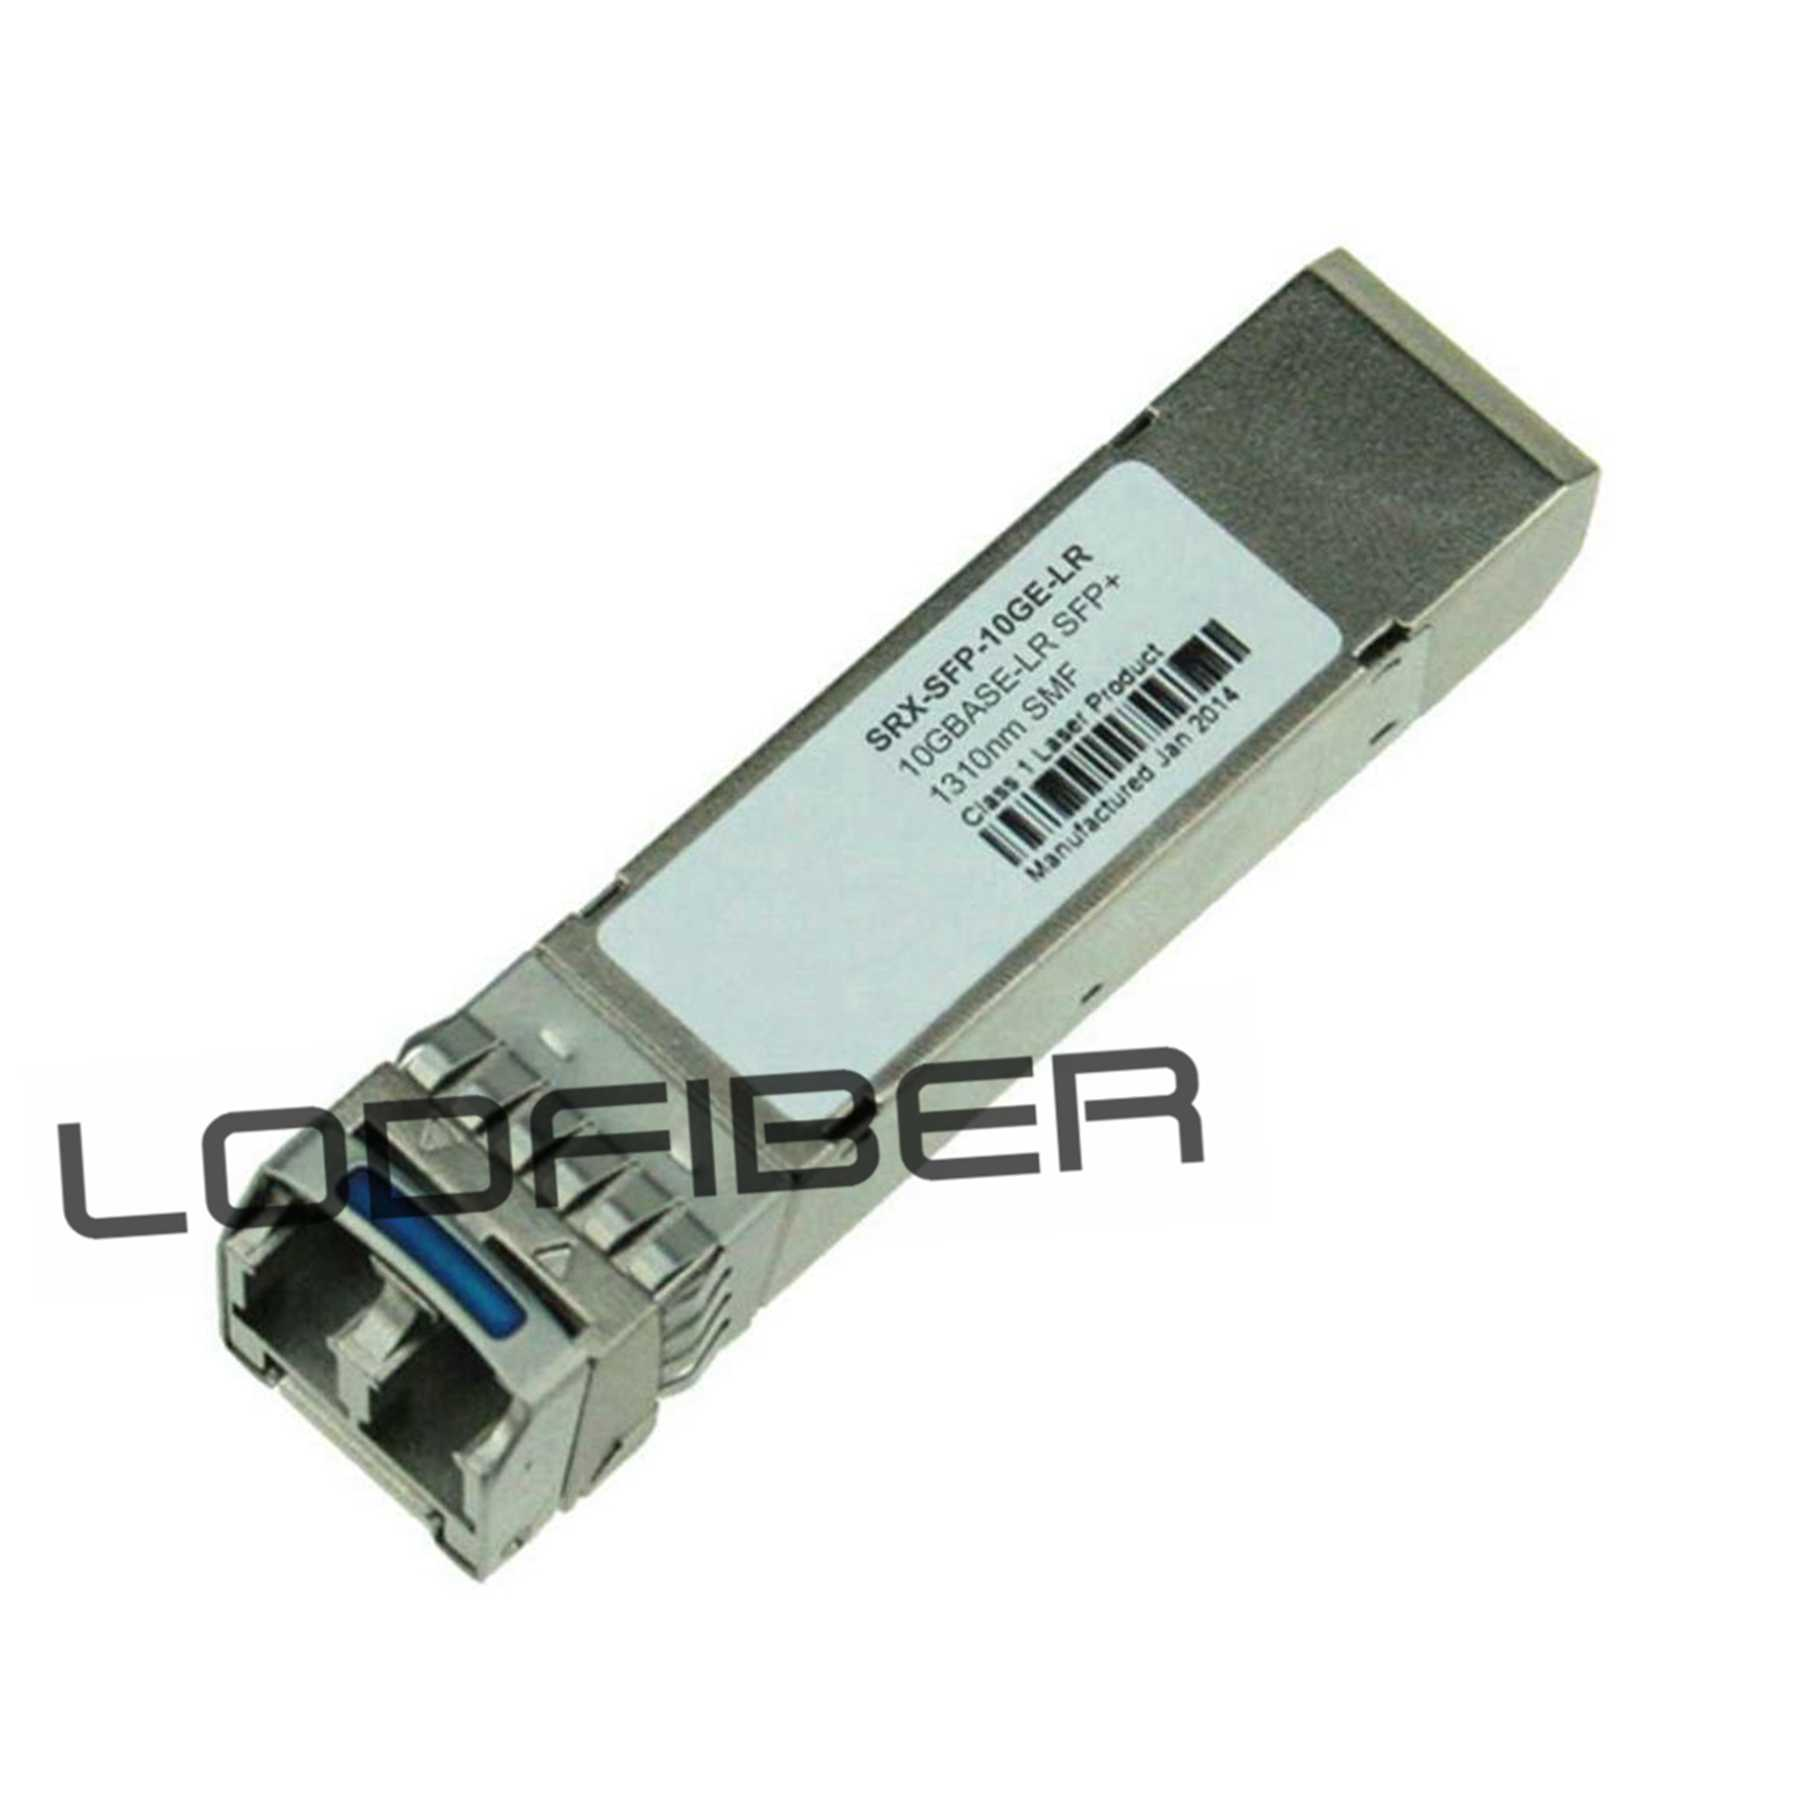 1310nm 10km DOM Transceiver LODFIBER SFP-10G-GE-LX Huawei Compatible 1000BASE-LX and 10GBASE-LR SFP